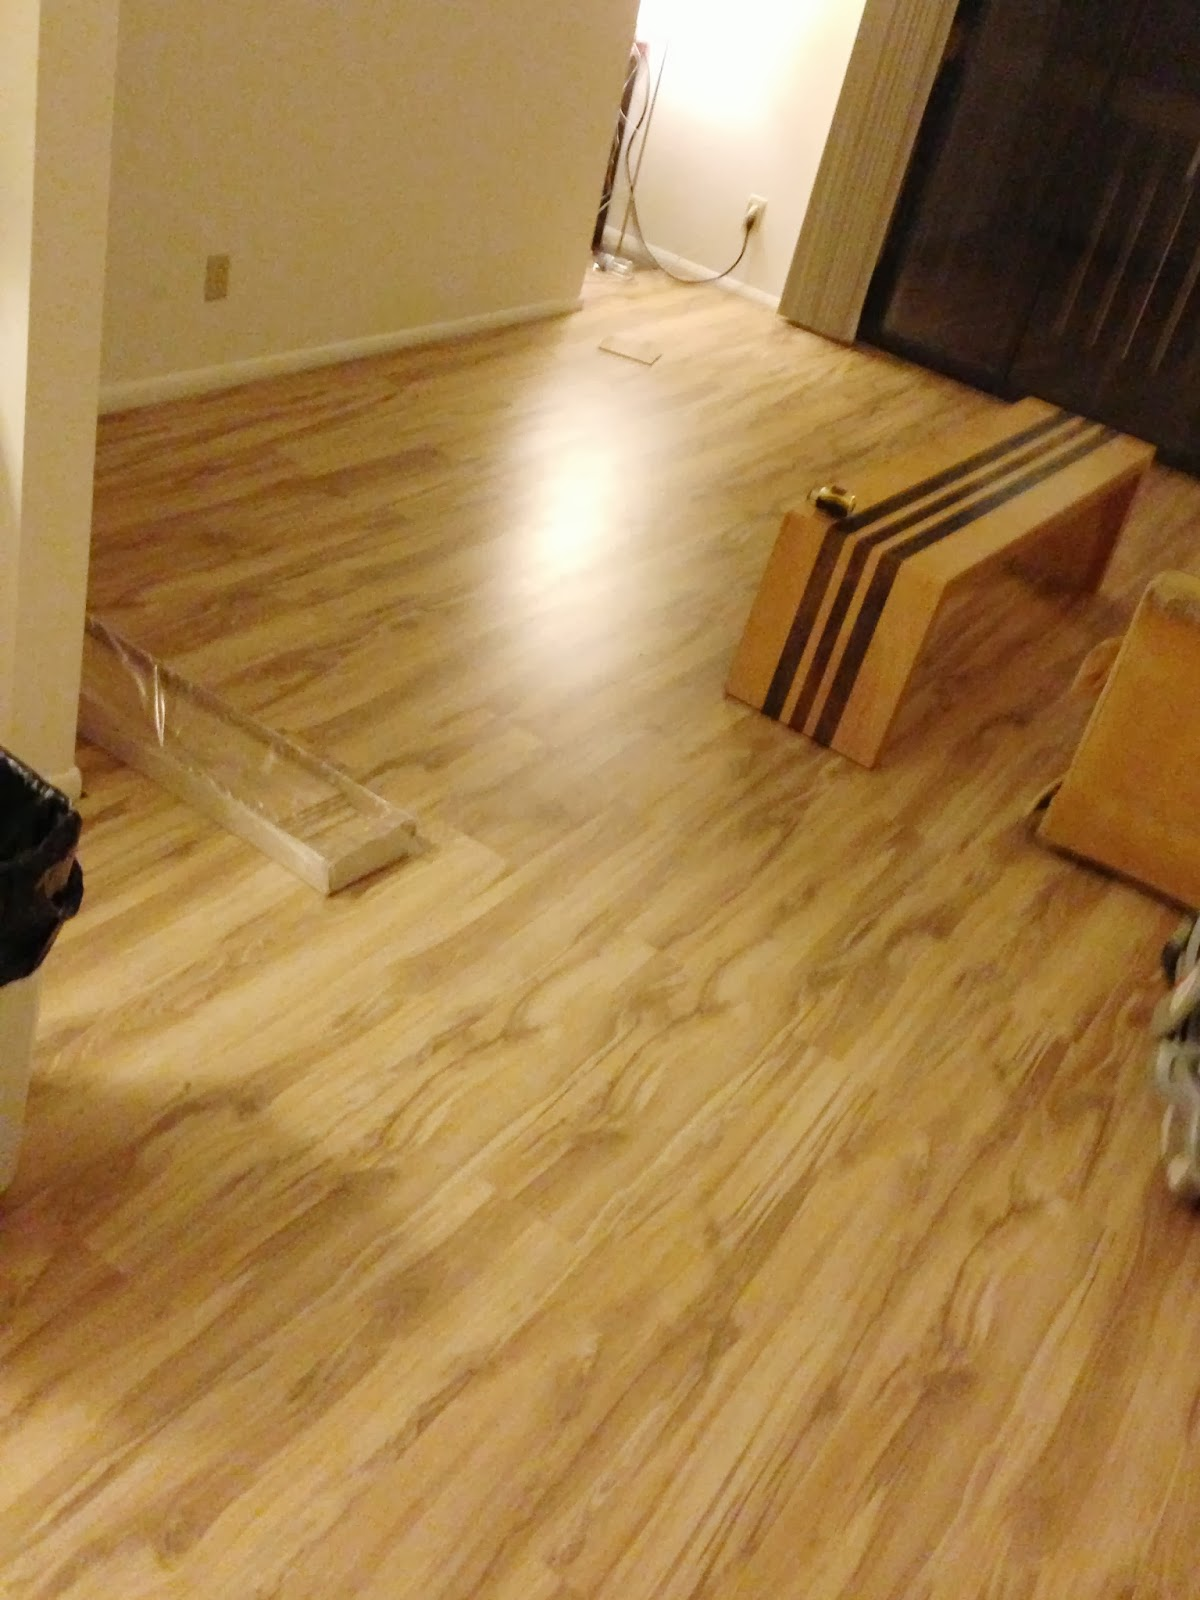 How We Put Hardwood Over Carpet Messymom - What do i put under laminate flooring